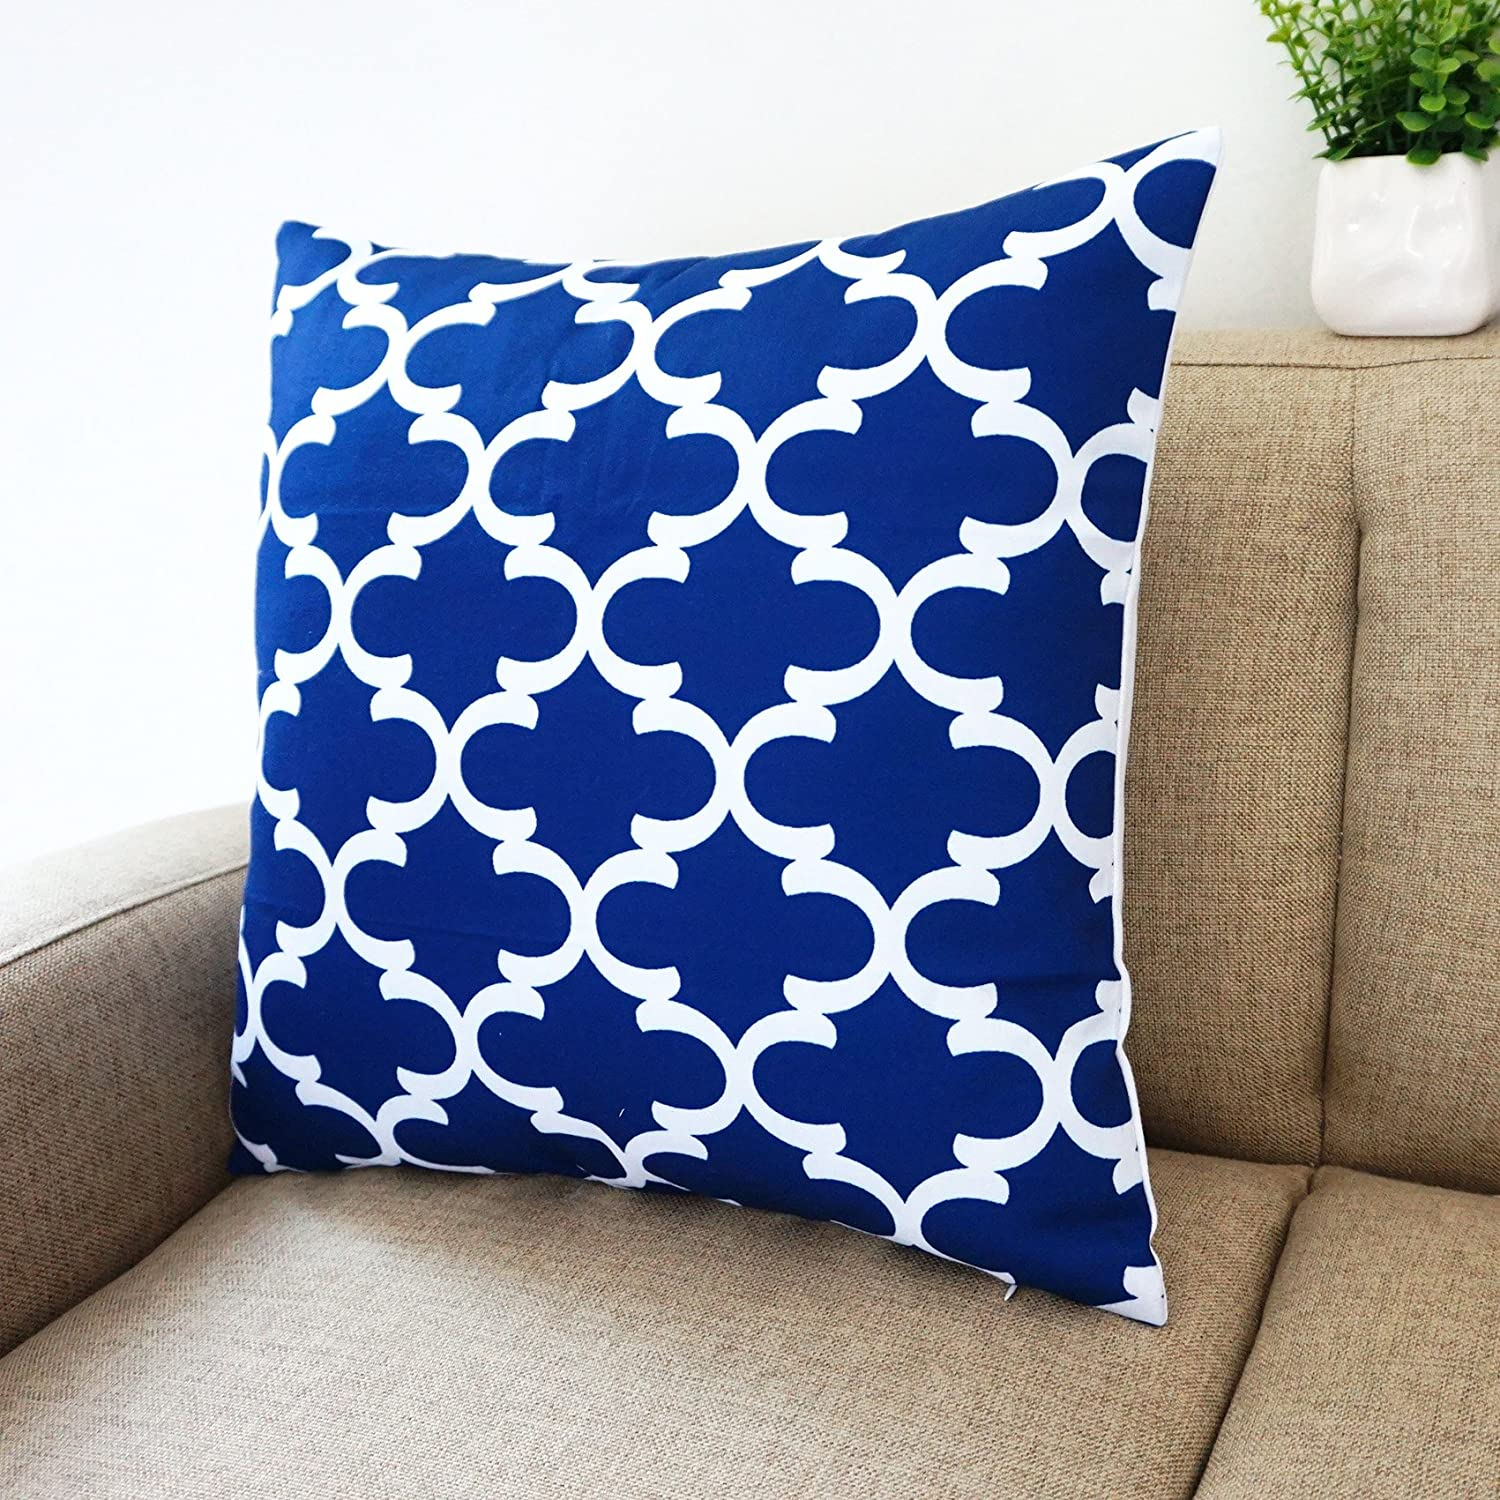 Amazon.com: Blue and White Howarmer® Square Cotton Canvas ...